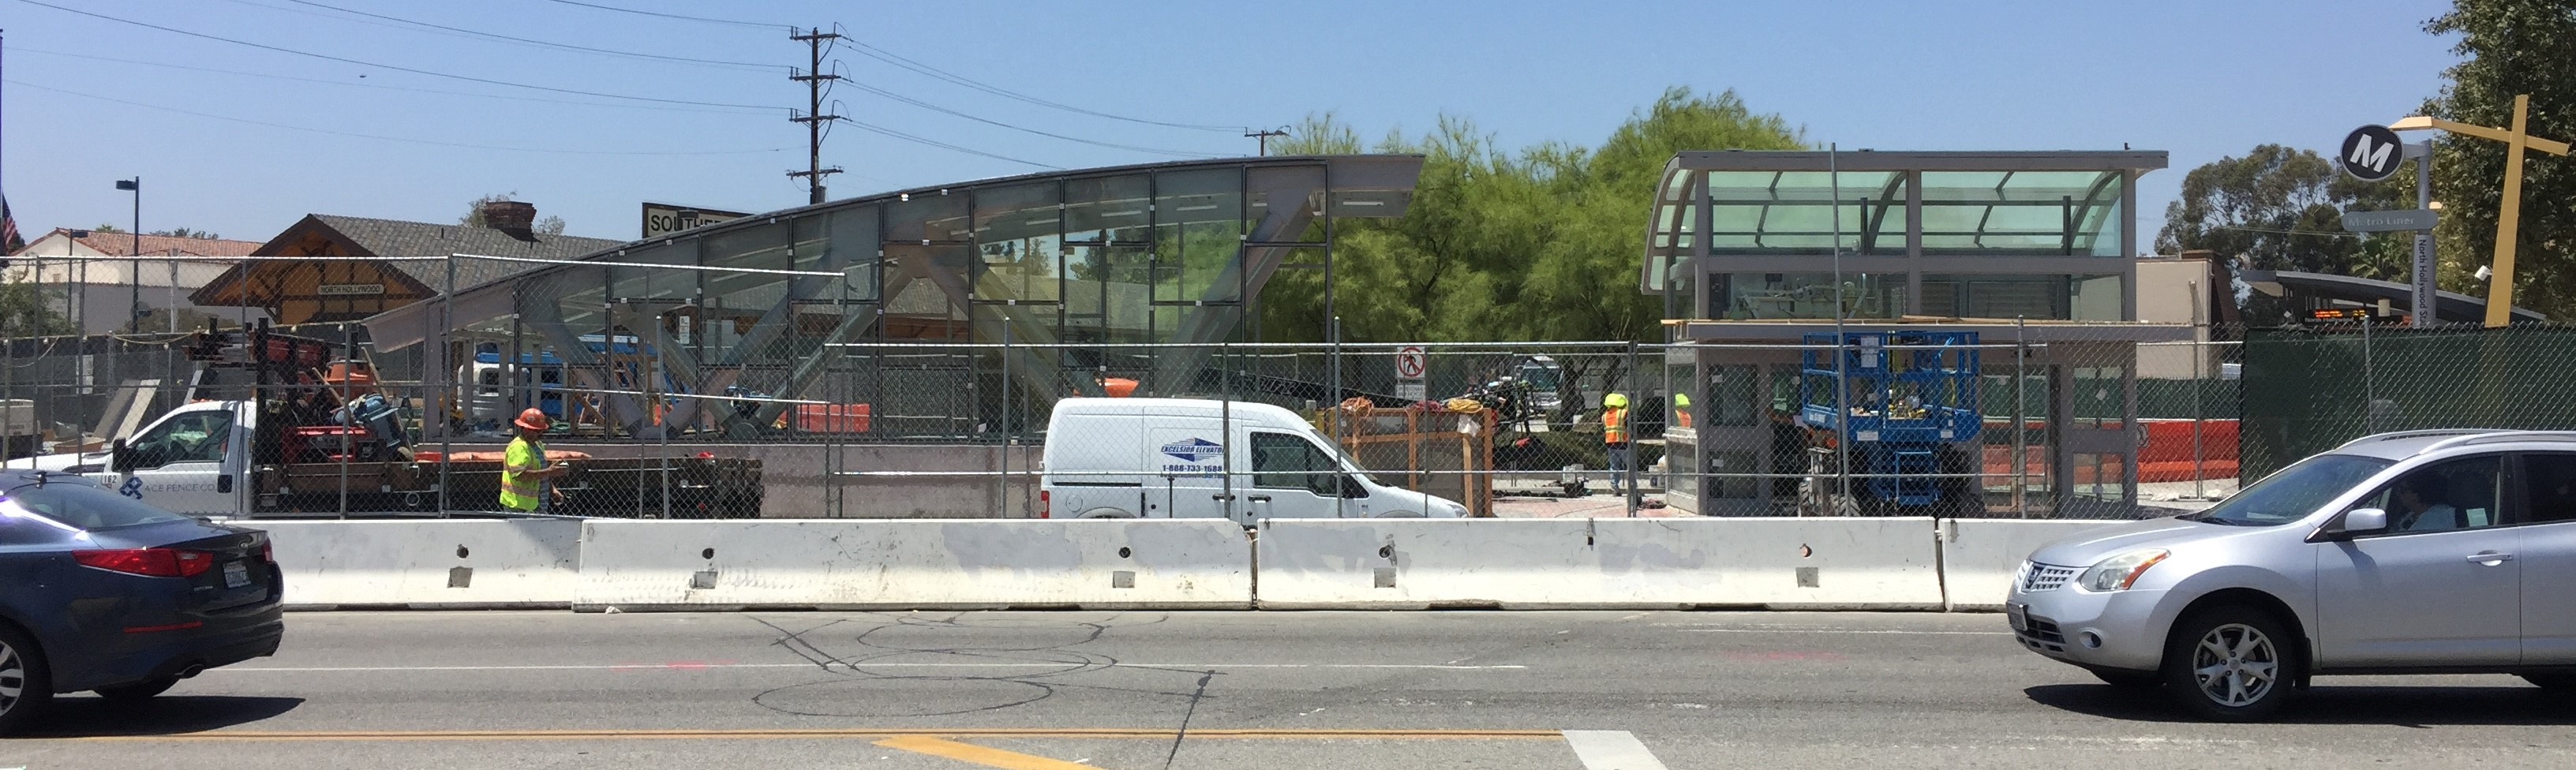 North Hollywood Station's new above-ground structures, as viewed from the Red Line Station. The new North Hollywood tunnel is due to open August 2016. Photos by Joe Linton/Streetsblog L.A.